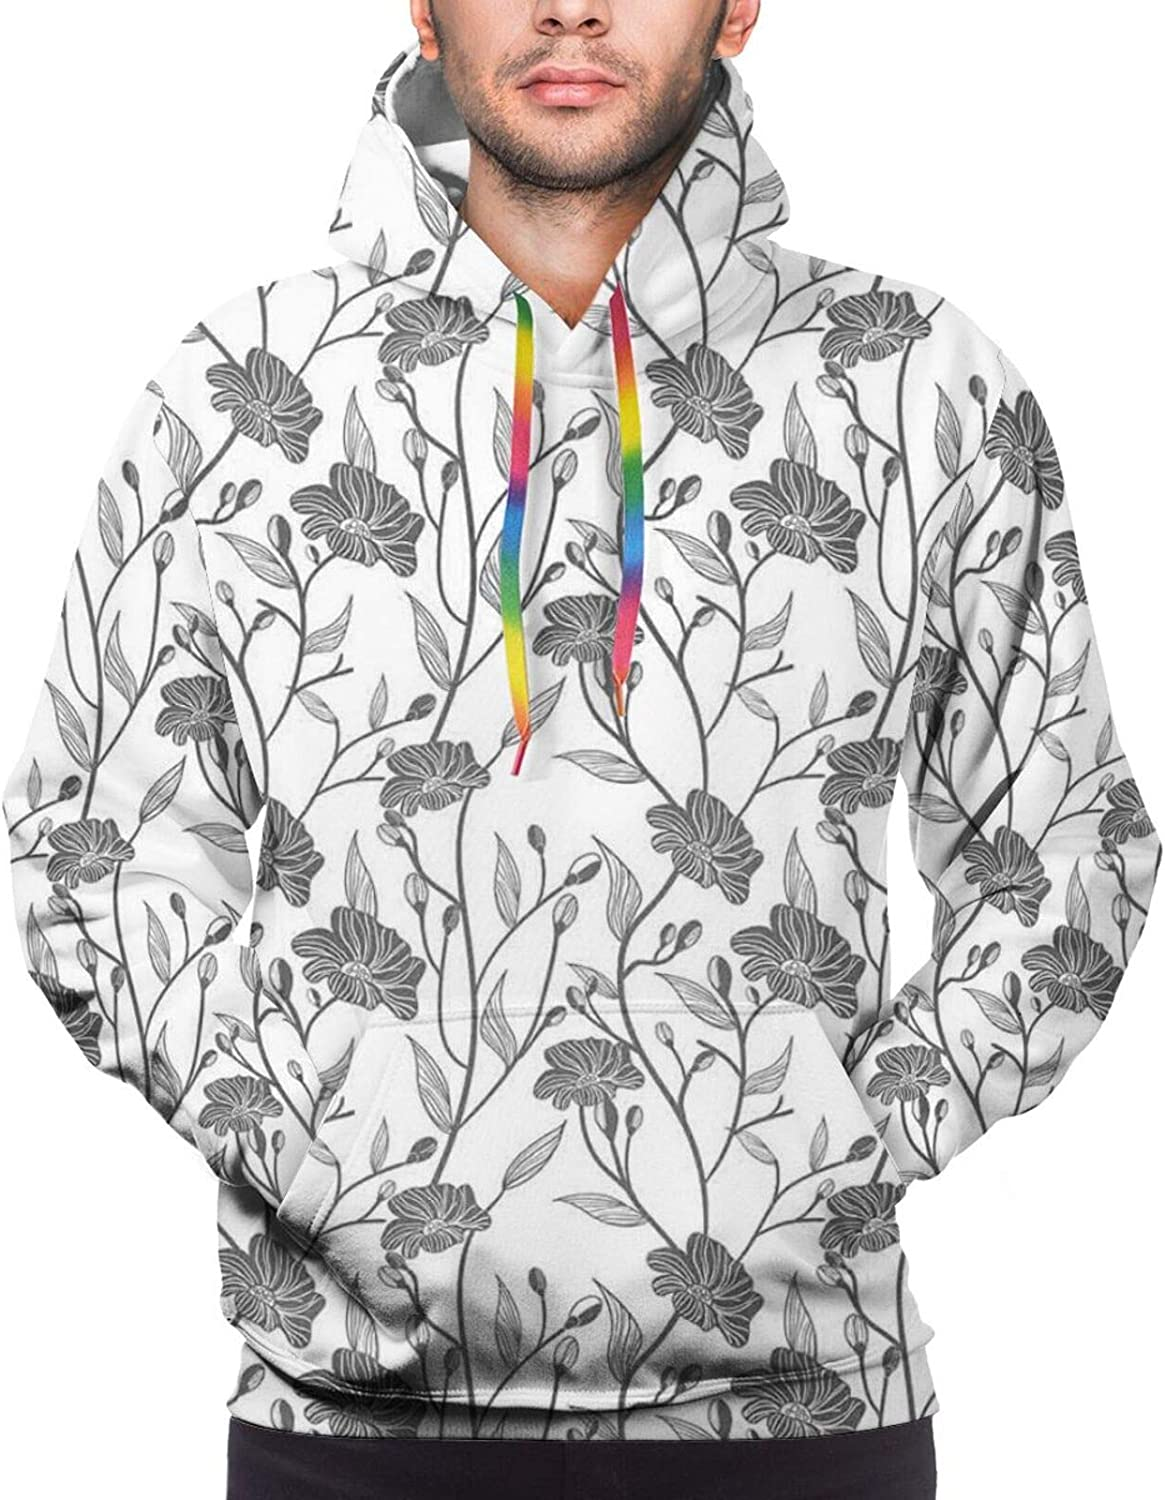 TENJONE Men's Hoodies Sweatshirts,Modern Graphic Design of A Round and Radial Shape with Ombre Effect